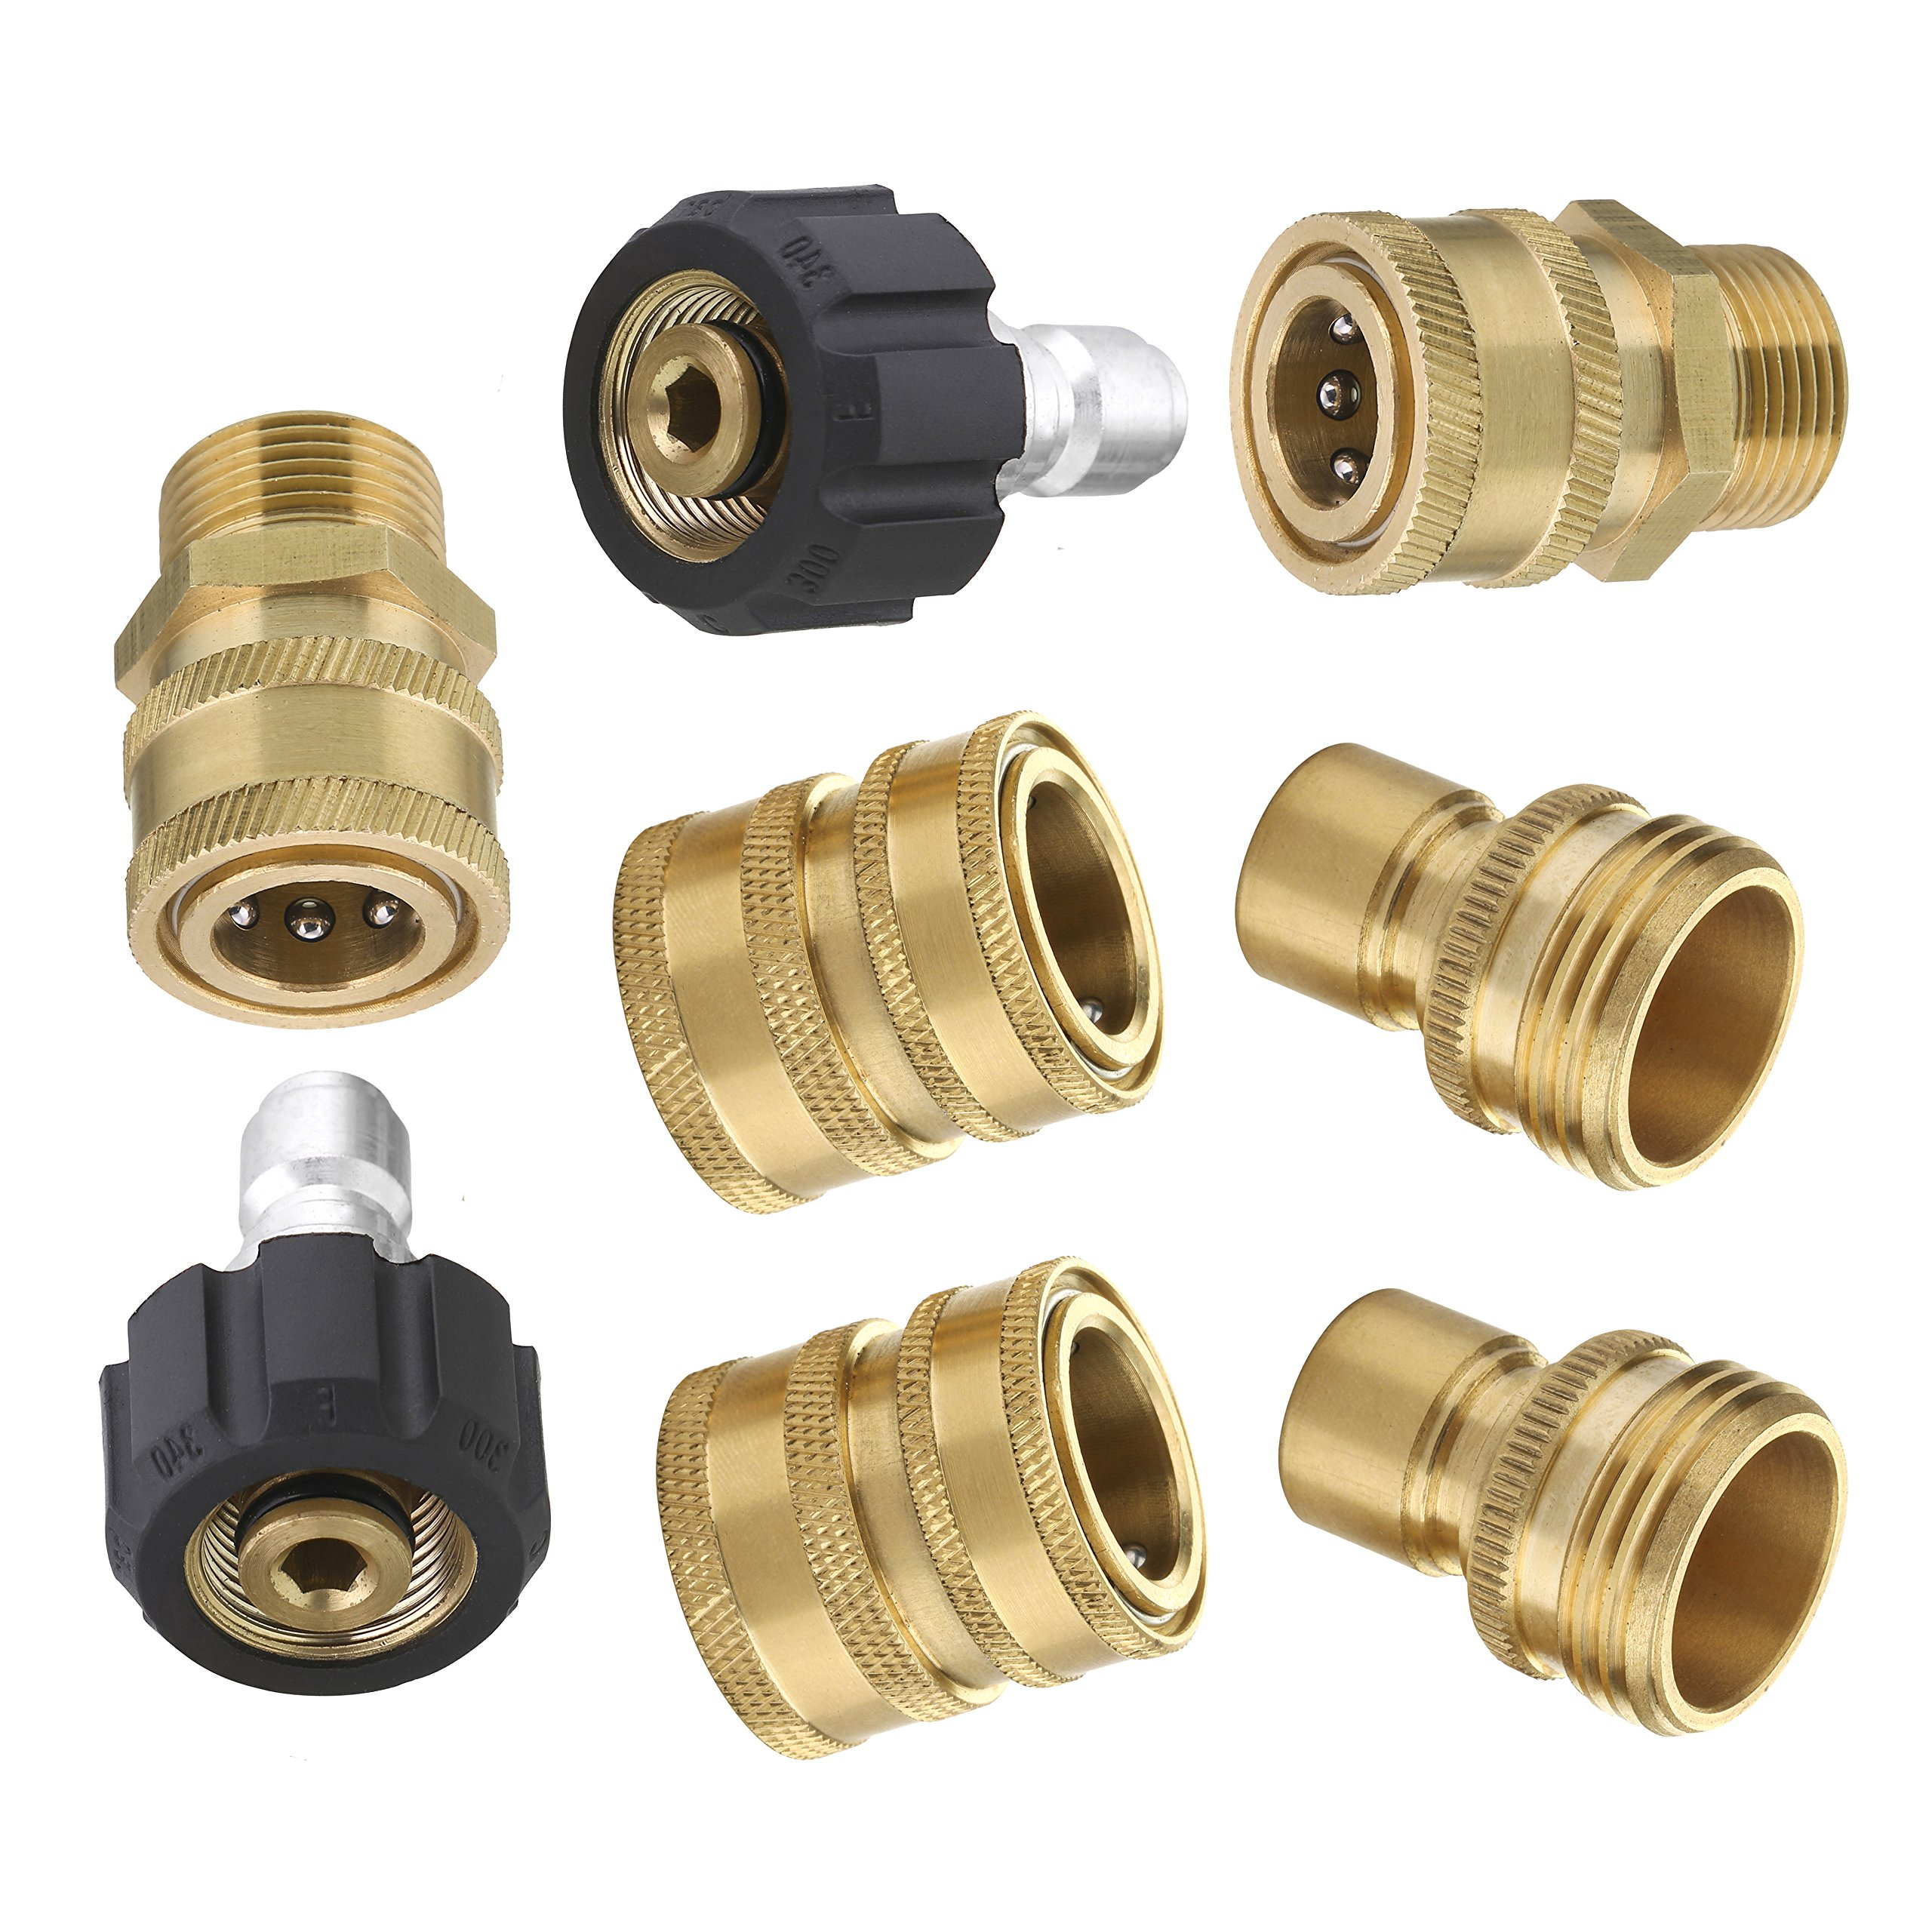 NPT 3//8 Quick Connect Fitting Pressure Washer Coupler Connector Adapter Set